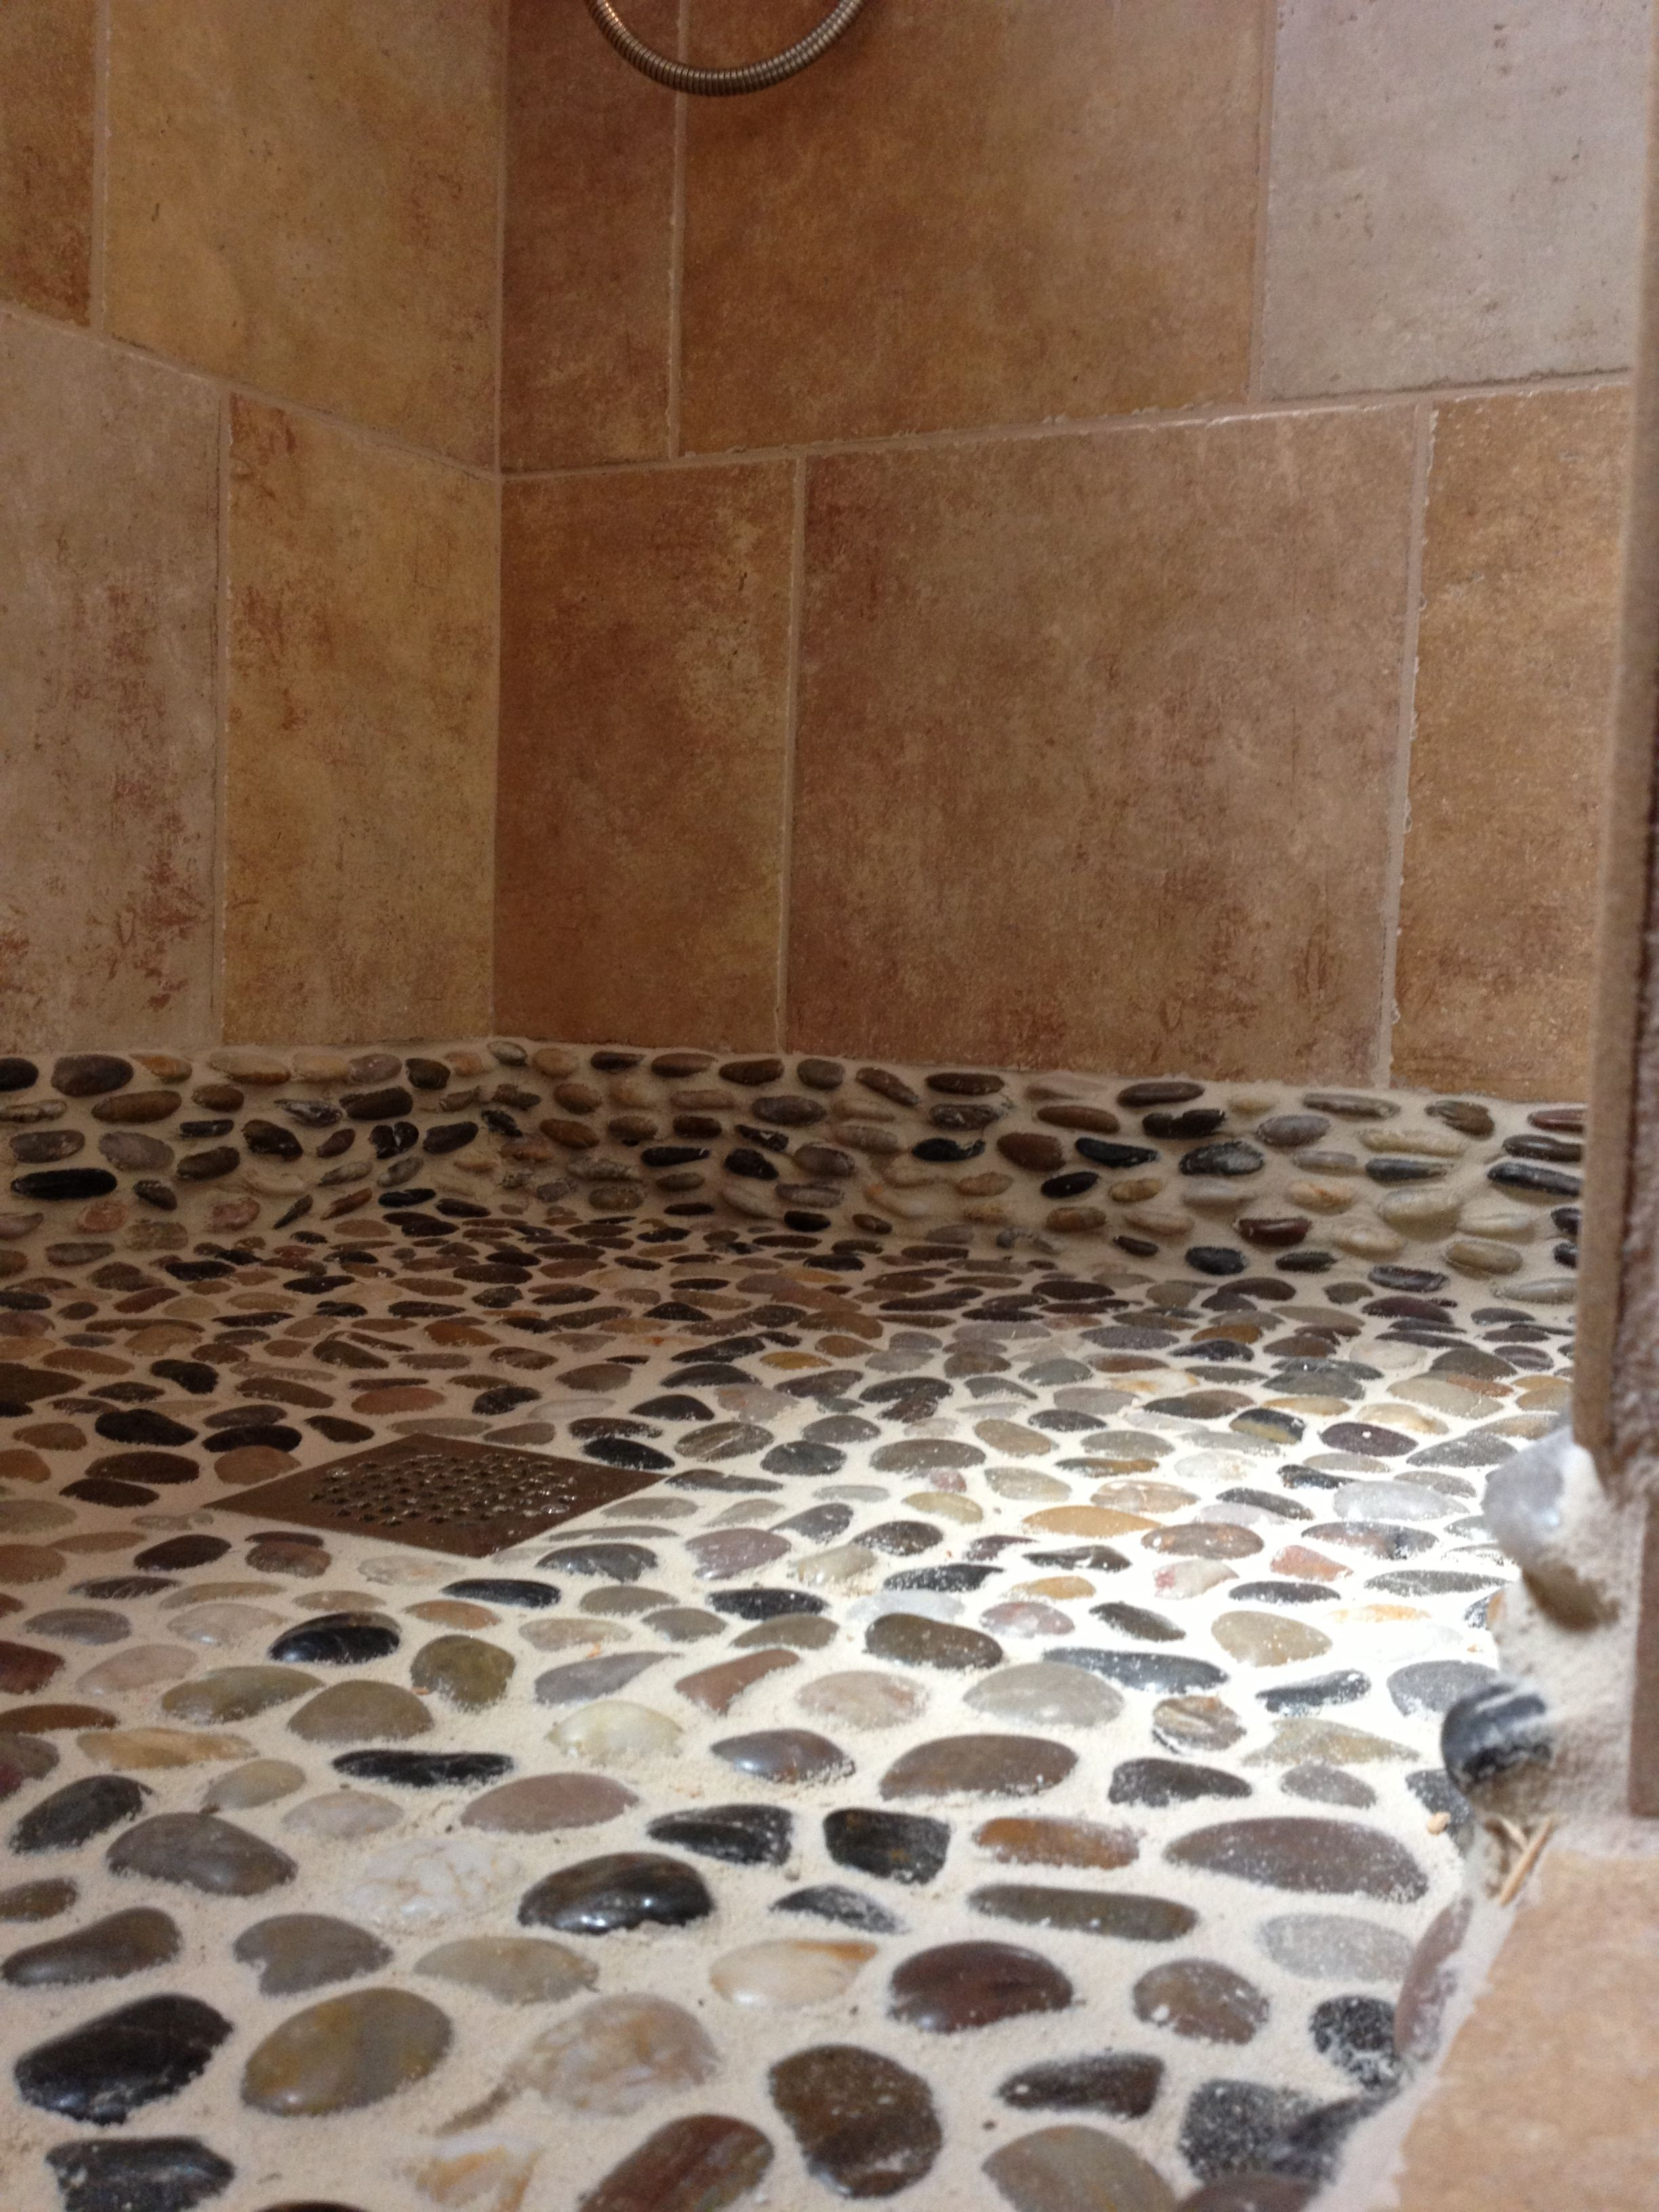 Colored Grout And New Tile Create Fresh Bathroom Look: Pebble Floor With Sand Colored Grout Is Extended Up The